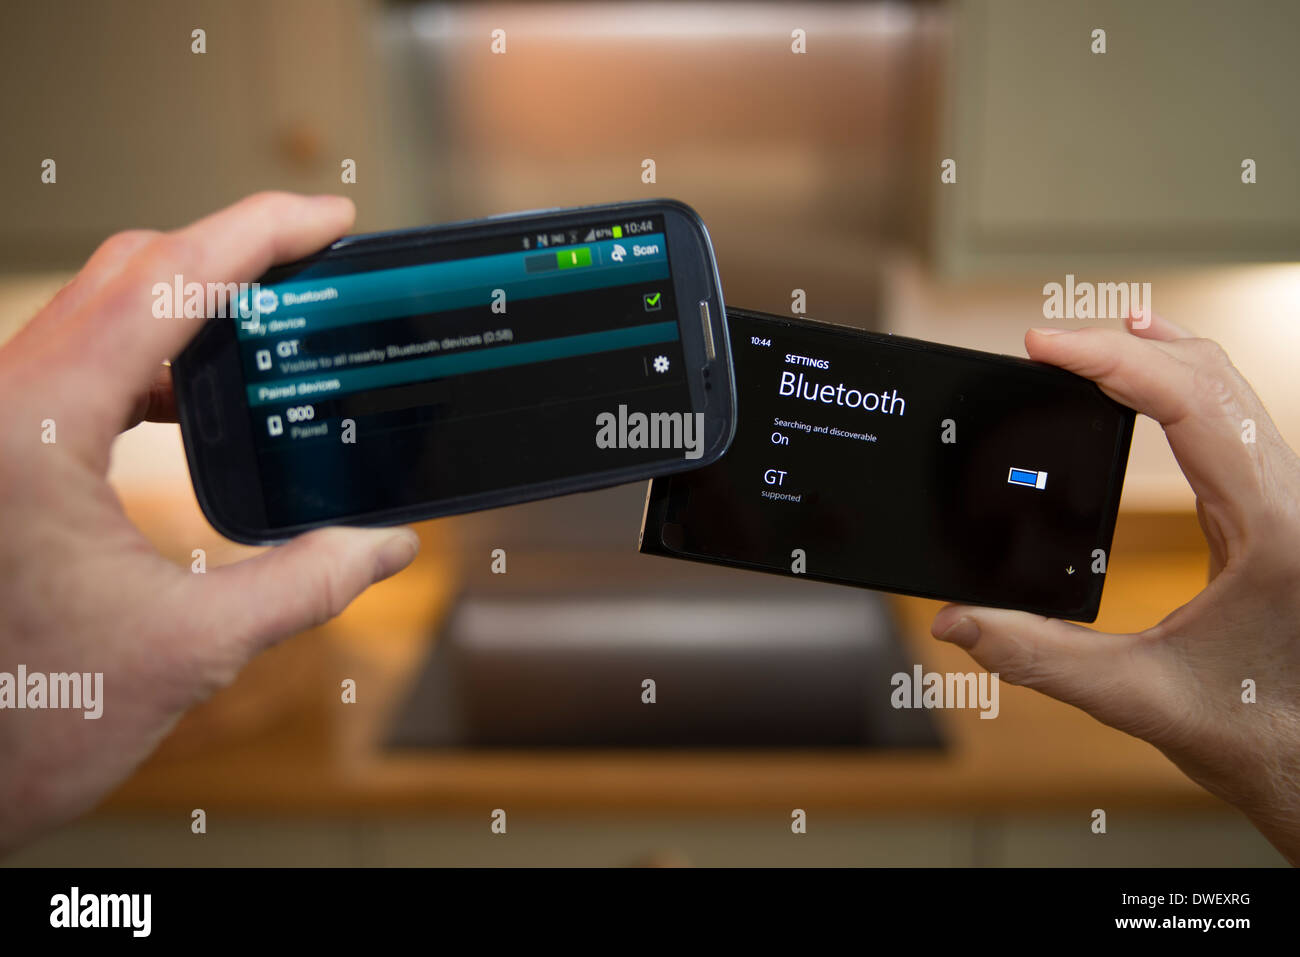 Two untethered smartphones communicating via Bluetooth technology - Stock Image